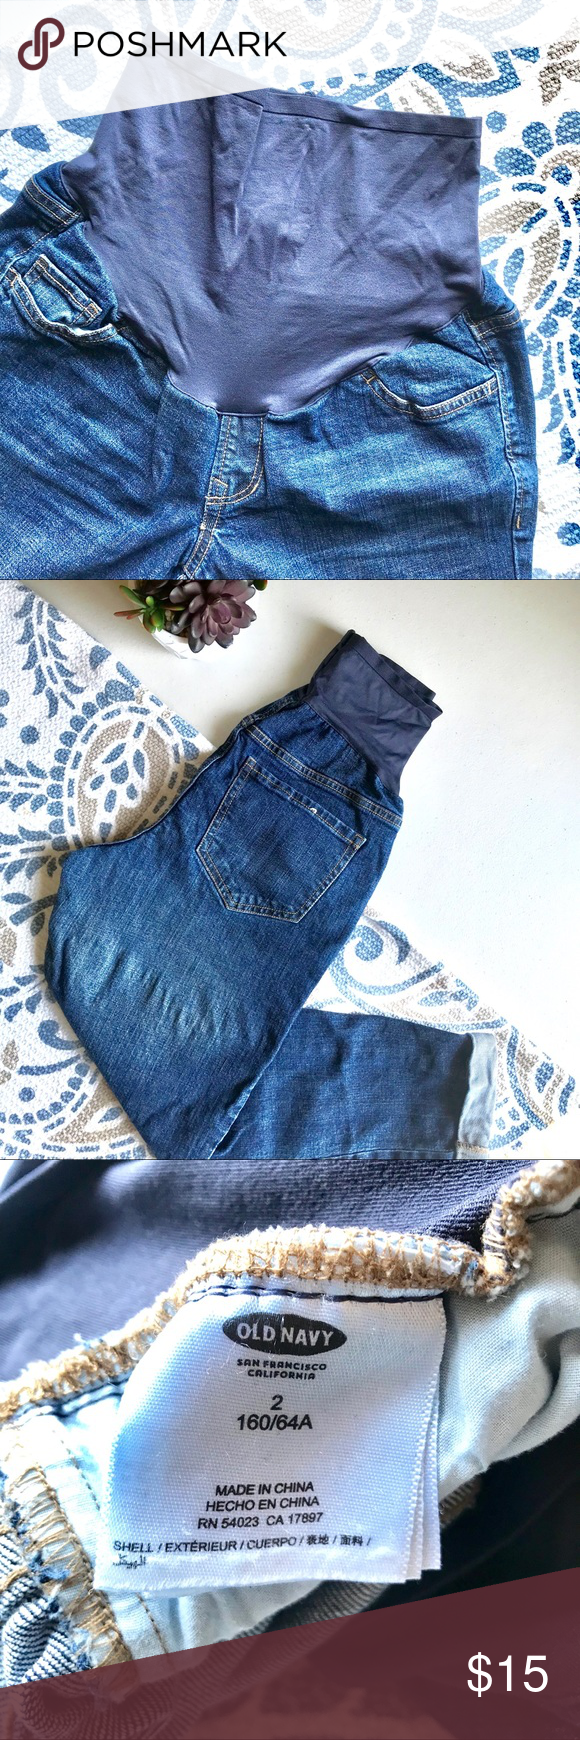 15+ Old navy maternity jeans ideas information